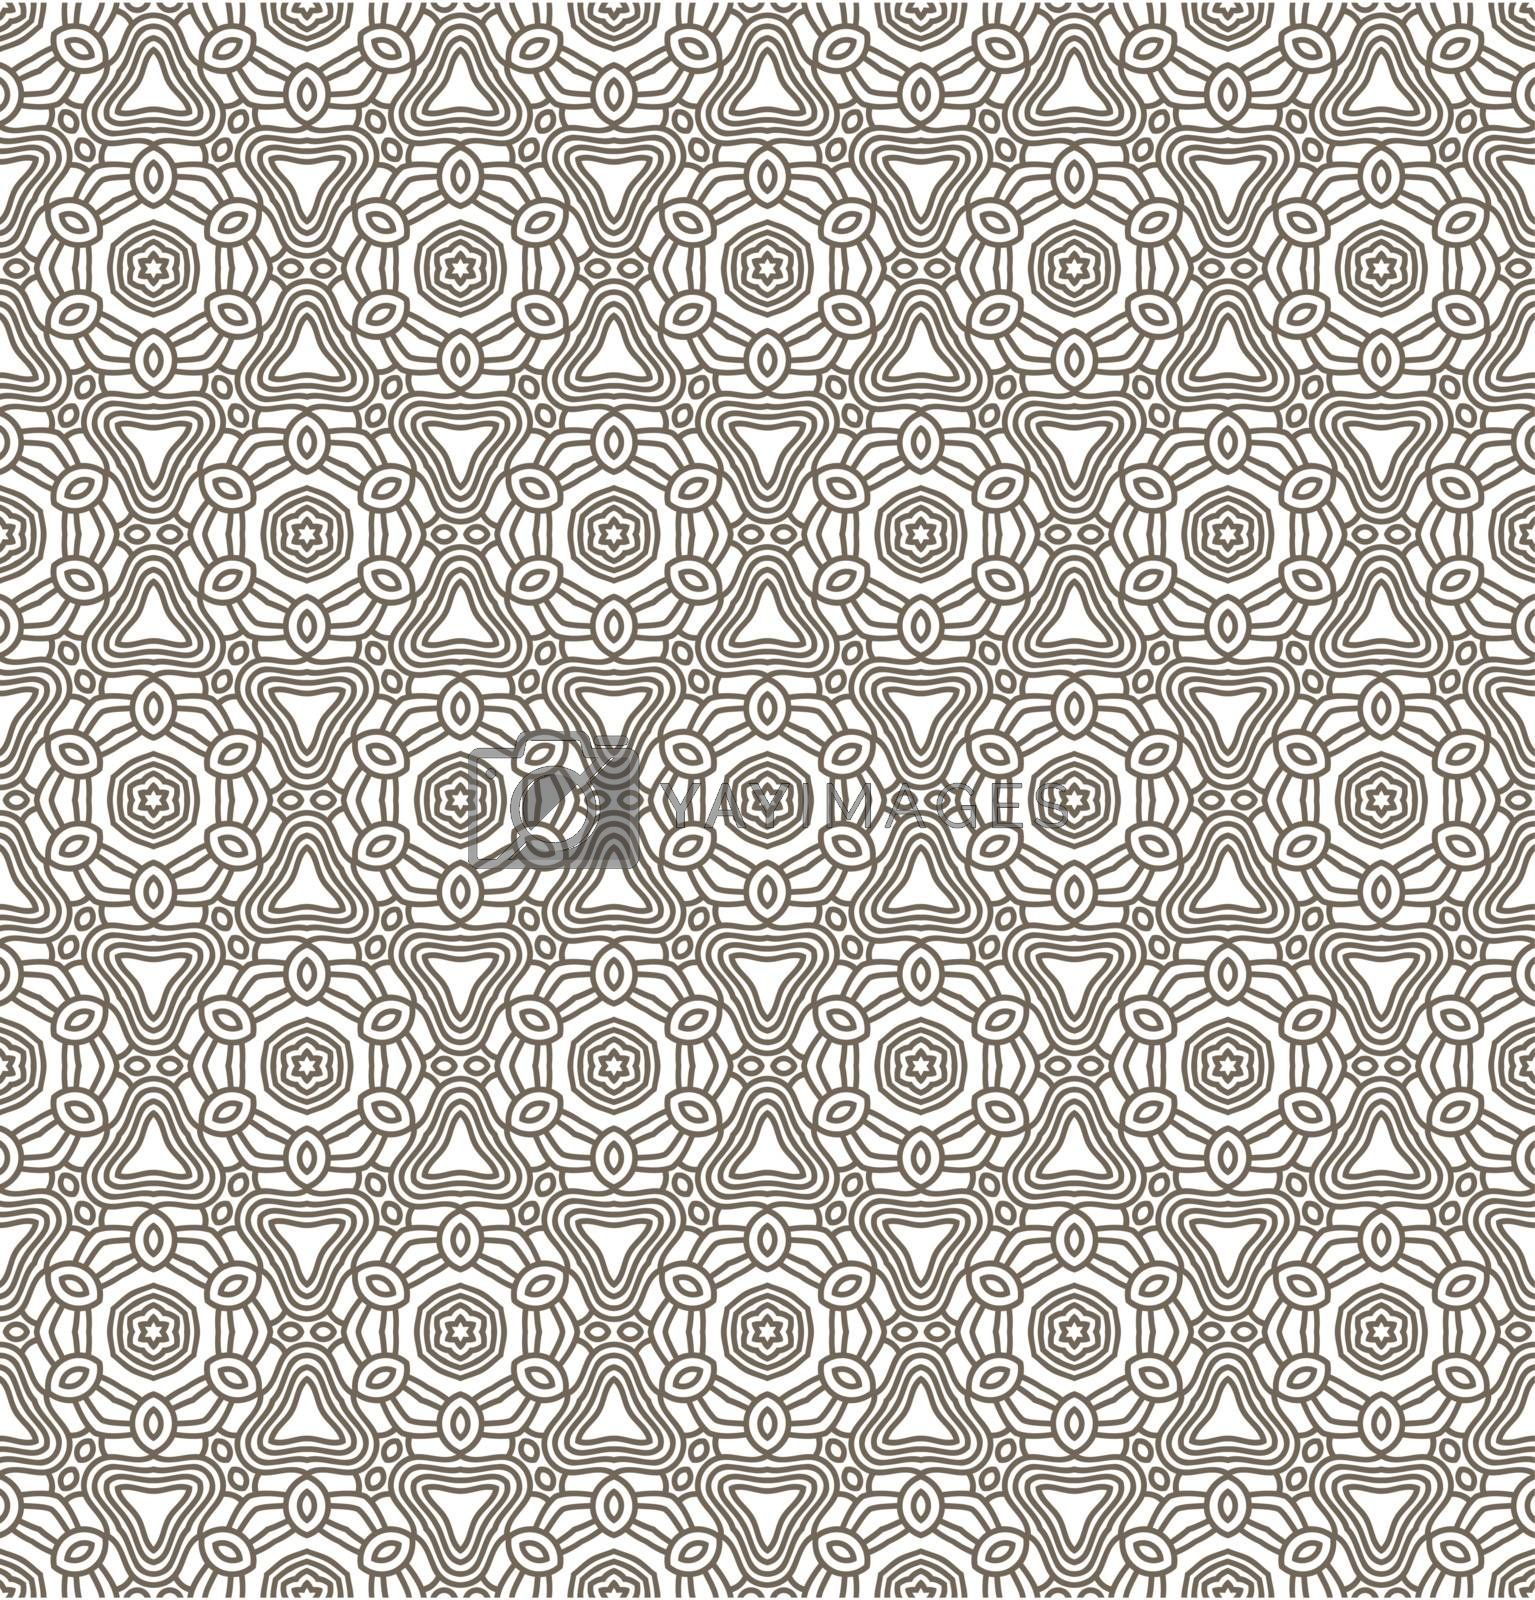 Seamless wallpaper with aztec ornament in brown and beige colors